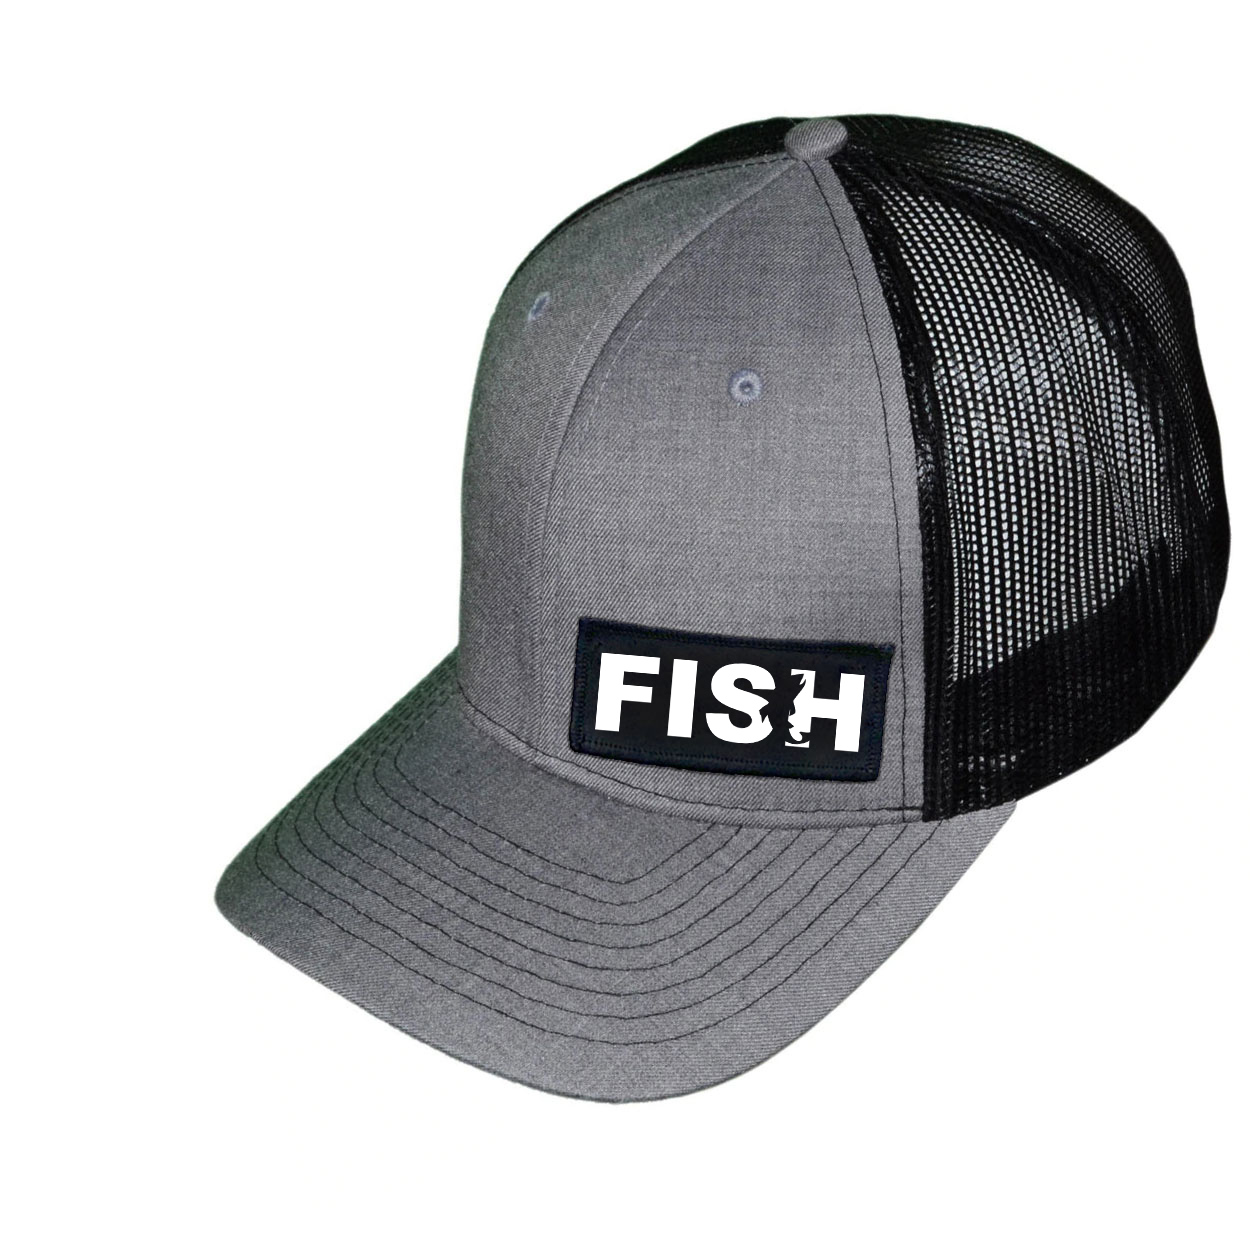 Fish Catch Logo Night Out Woven Patch Snapback Trucker Hat Heather Gray/Black (White Logo)